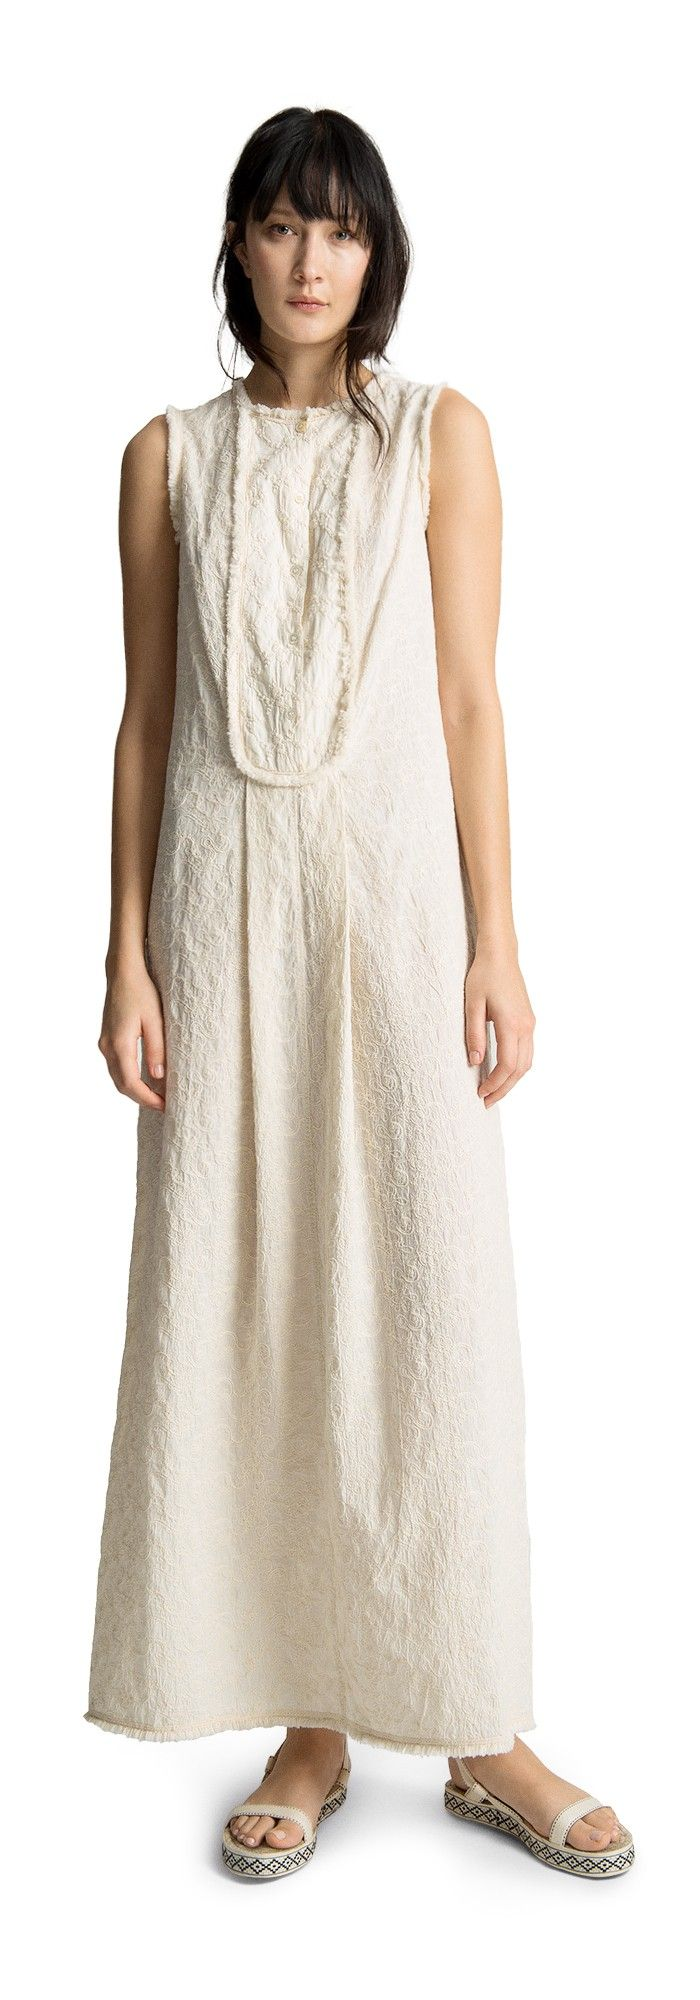 Leon Max Twisted Front Dress Sale Discounts Outlet Affordable Extremely Cheap Online Cost Cheap Online Discount Exclusive DcR8c